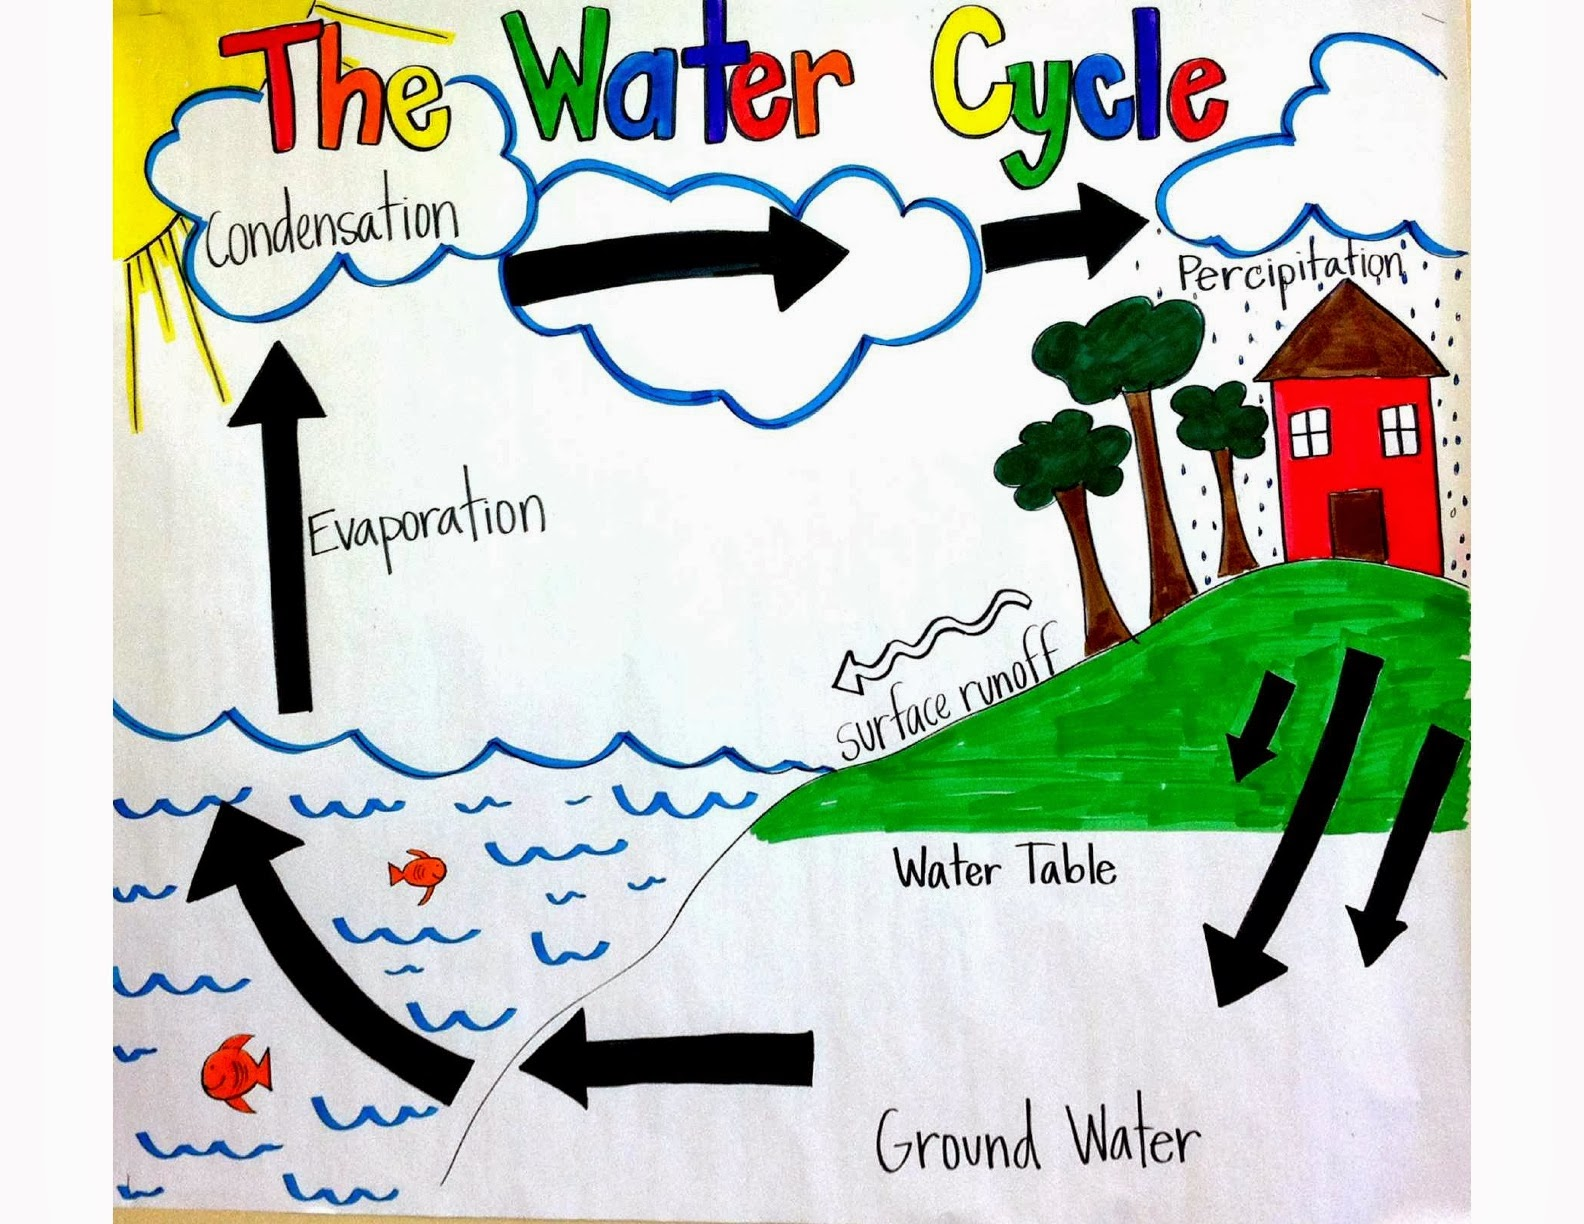 water cycle poster project Name:_____ water cycle poster - instructions and rubric (due: monday, may 2nd) instructions: using what you have learned about the water cycle, create a poster.